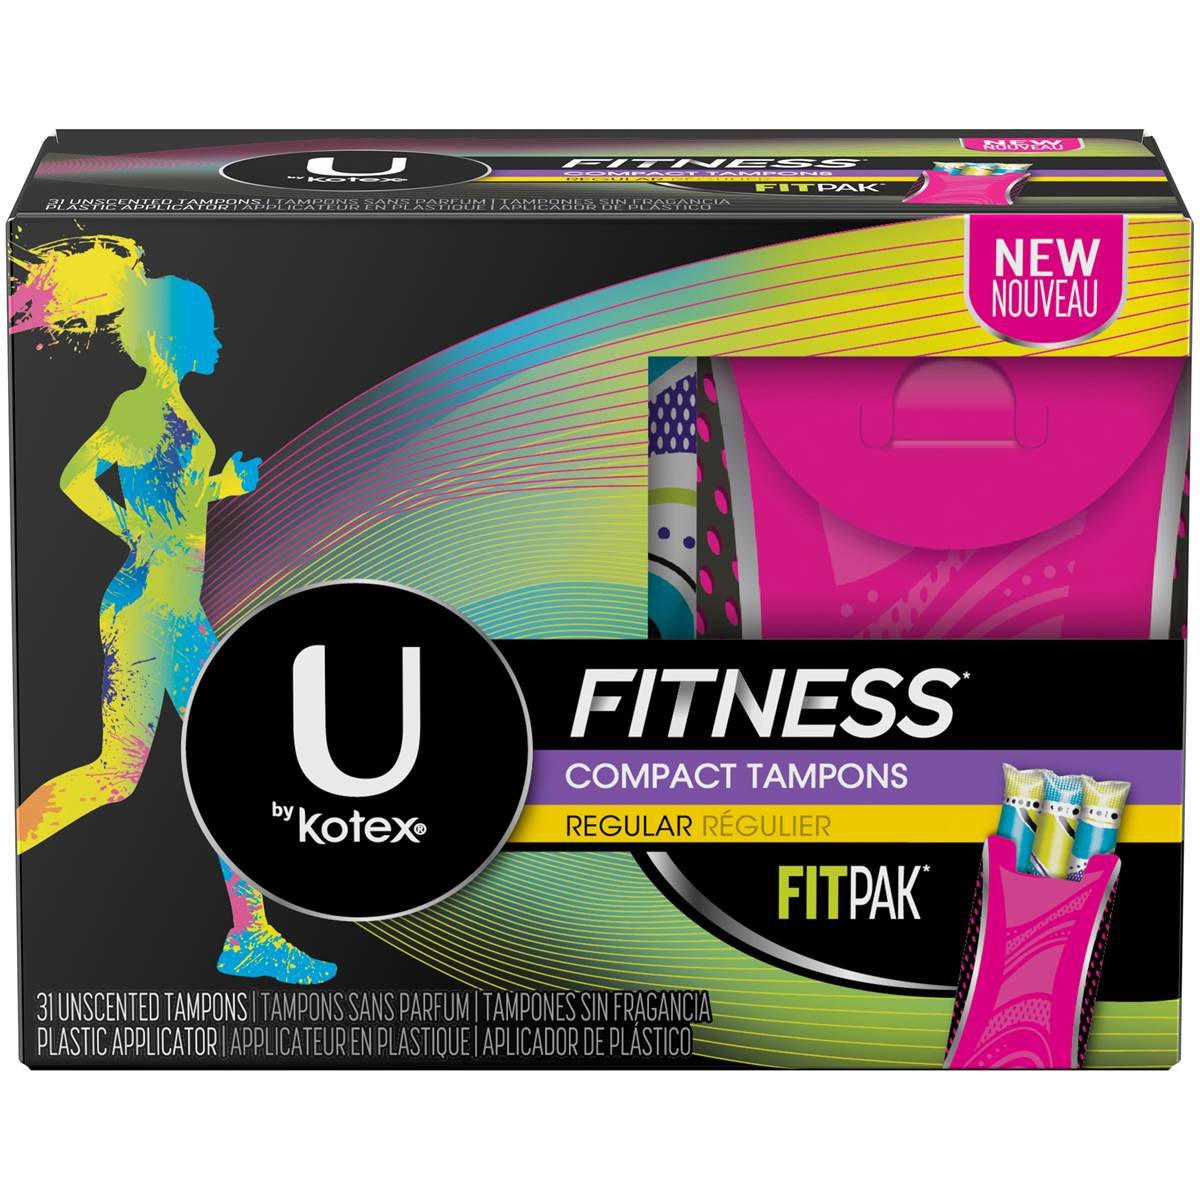 U by Kotex Fit Compact Regular Tampons - 6 PC